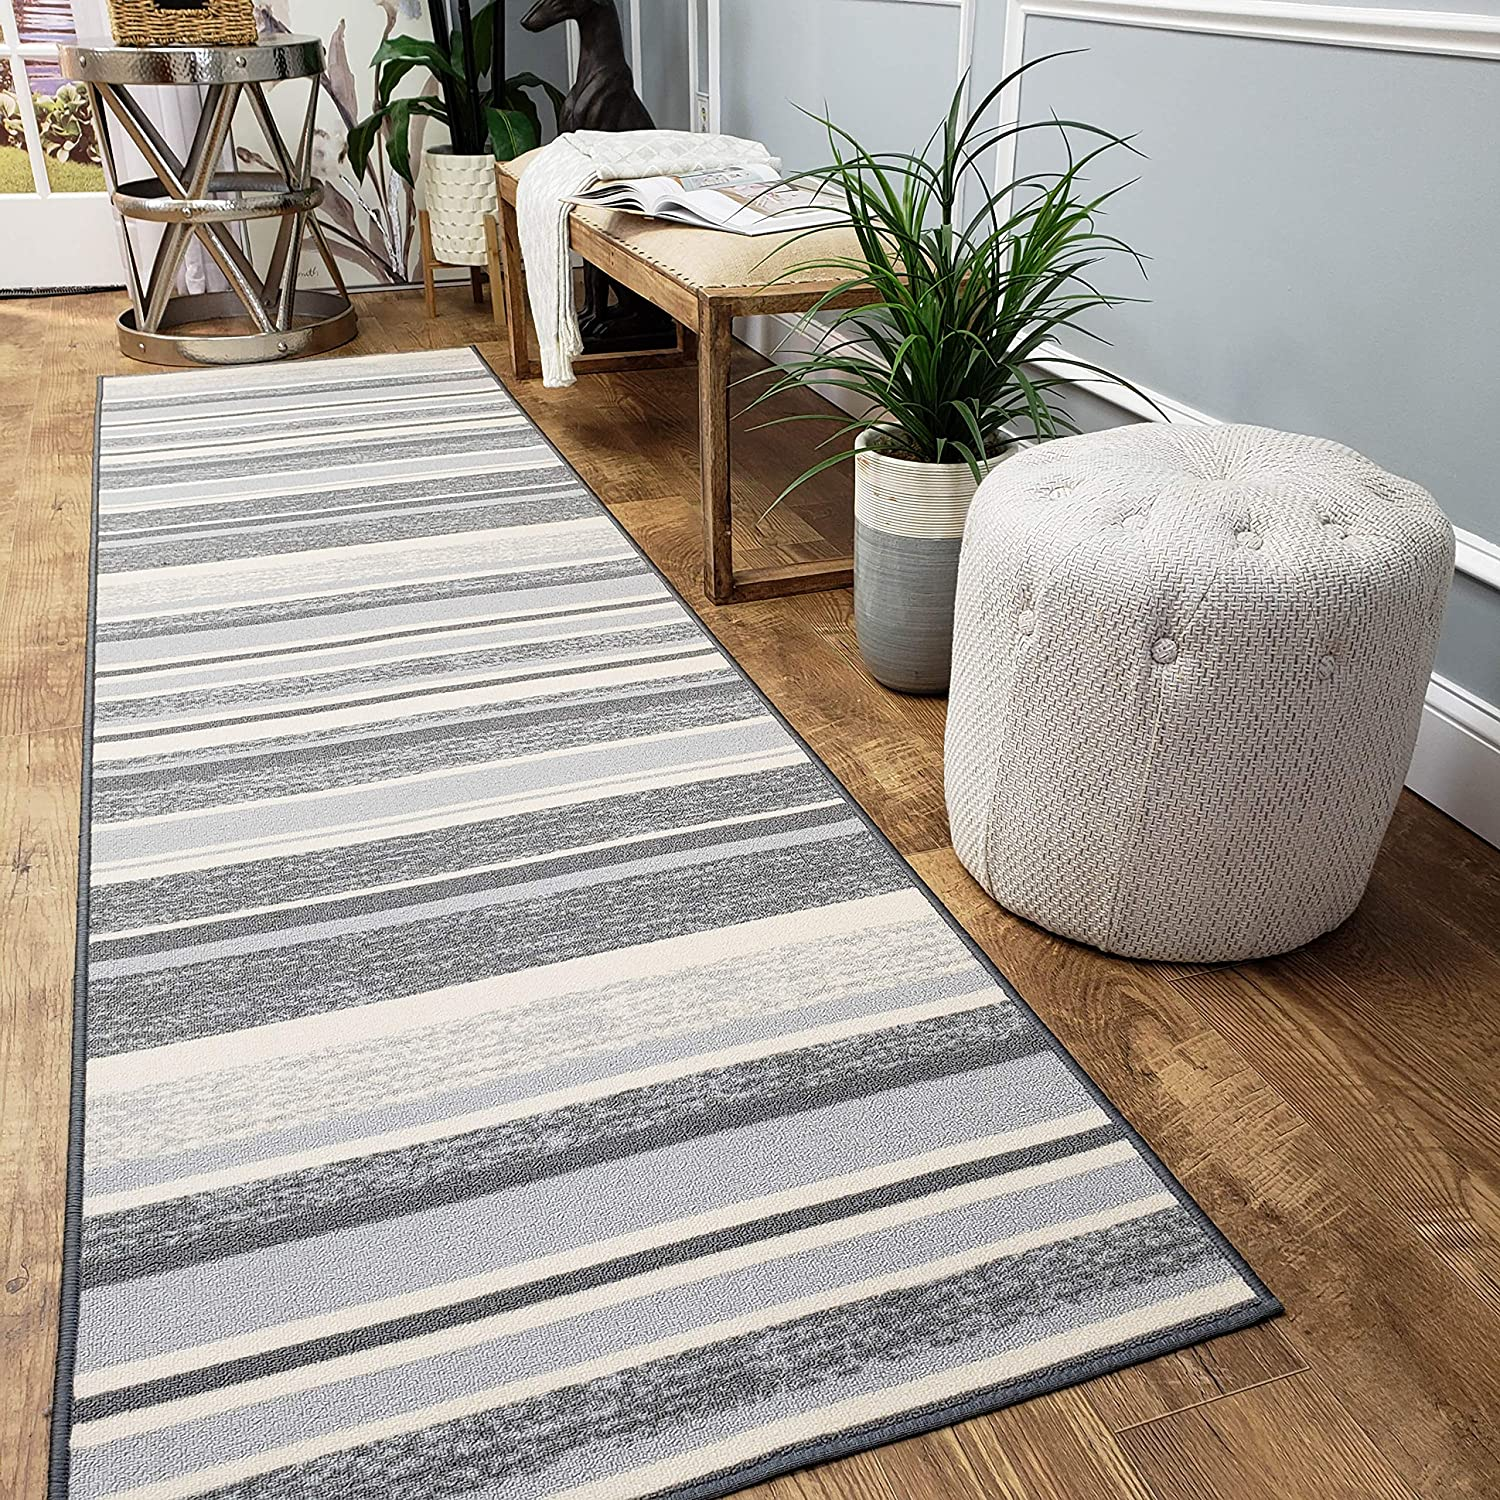 Custom Size Hallway Runner Rug - 22 in x 6 feet - Price Drops by Size - Rubber Backed Non Slip Stripes - Choose Width x Length